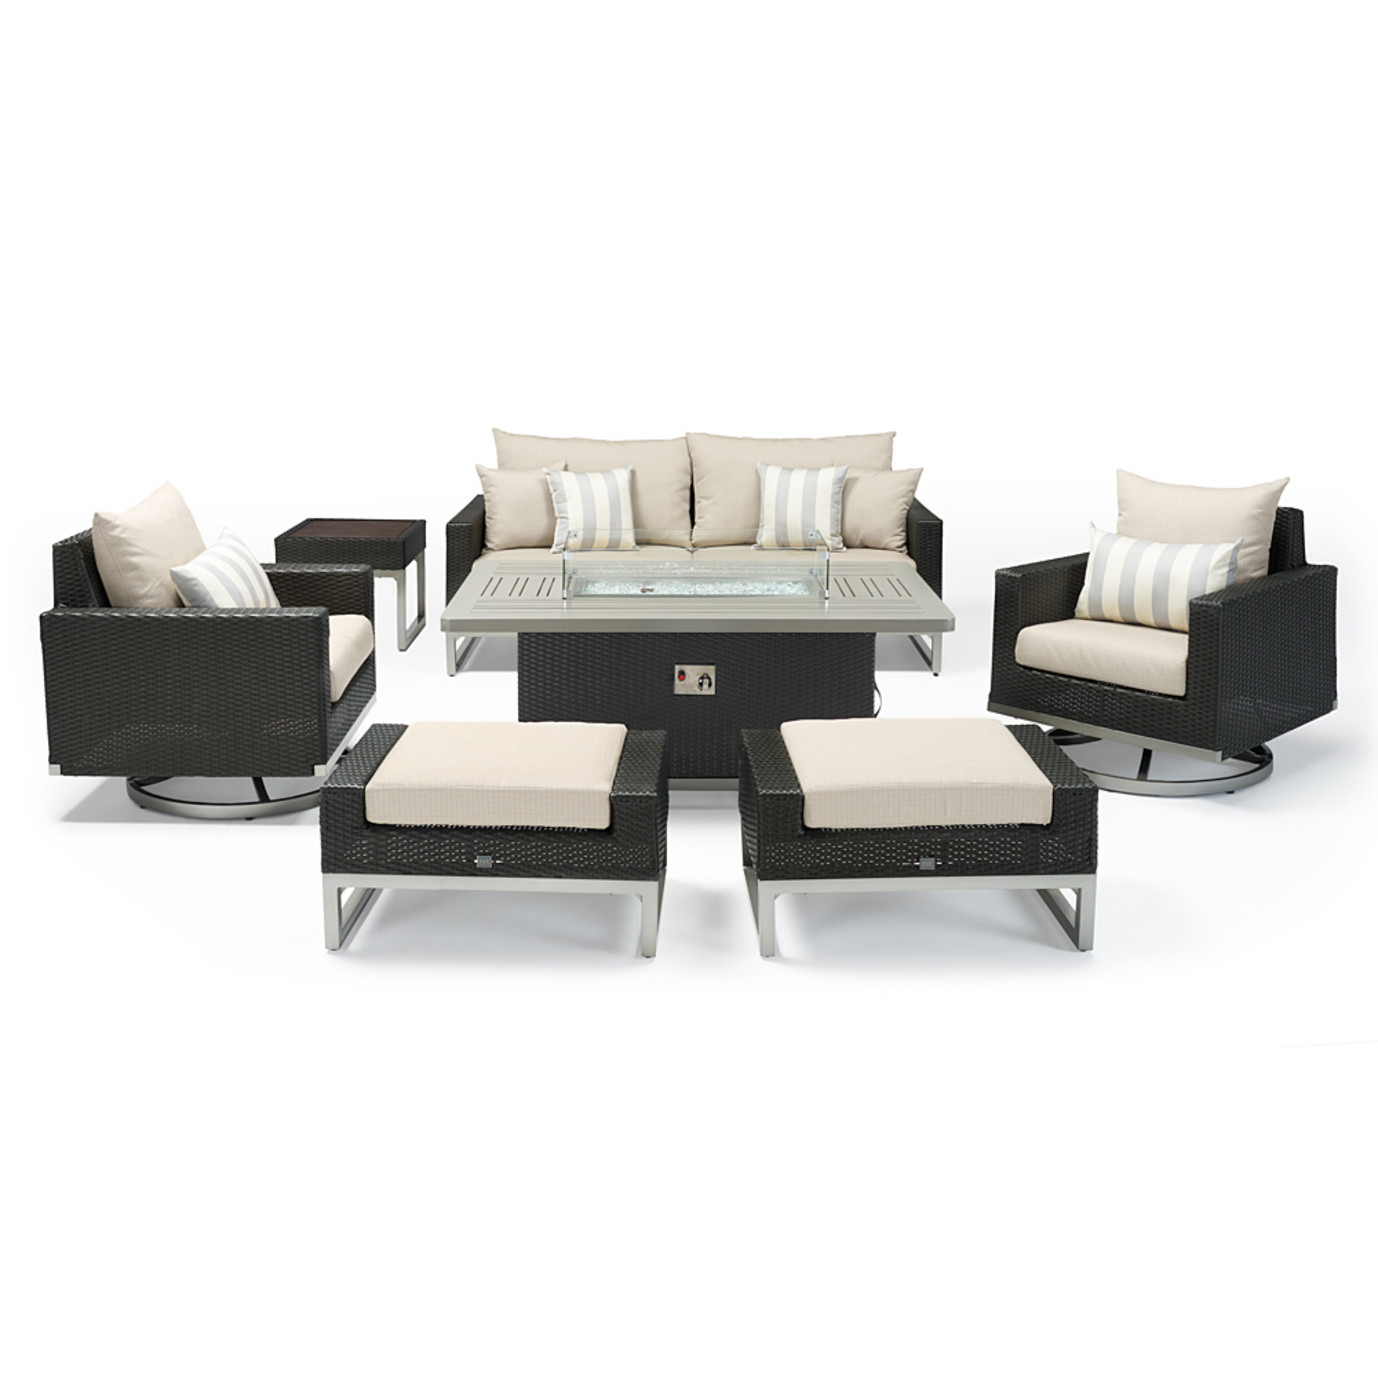 Milo™ Espresso 7 Piece Motion Fire Set - Slate Gray